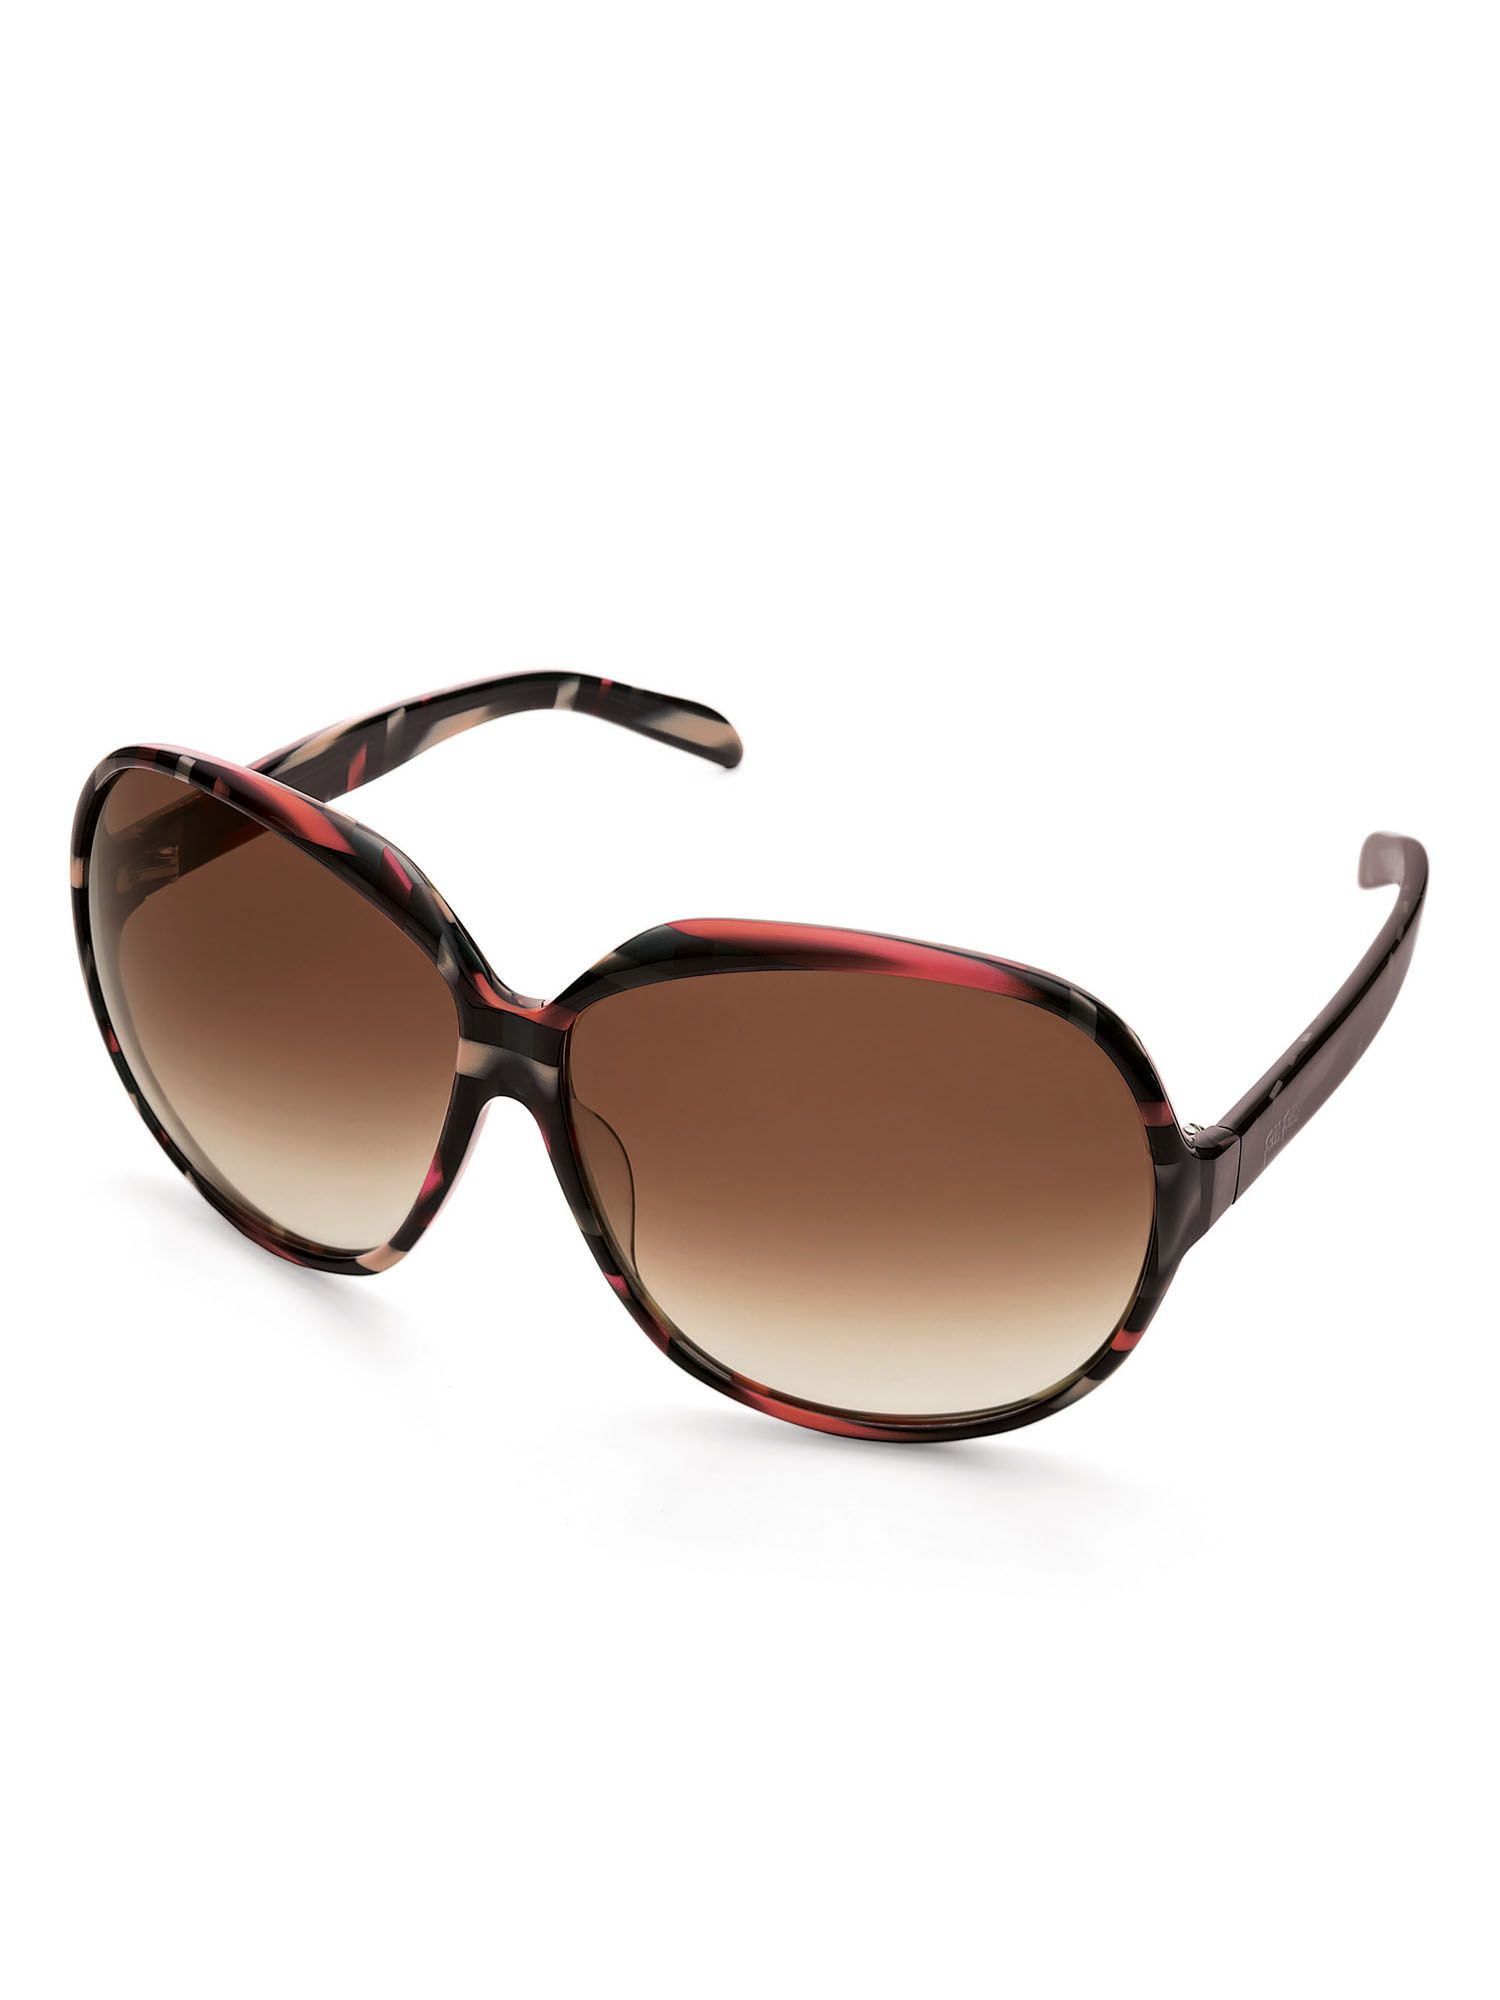 Ladies Dark Multi Round Sunglasses